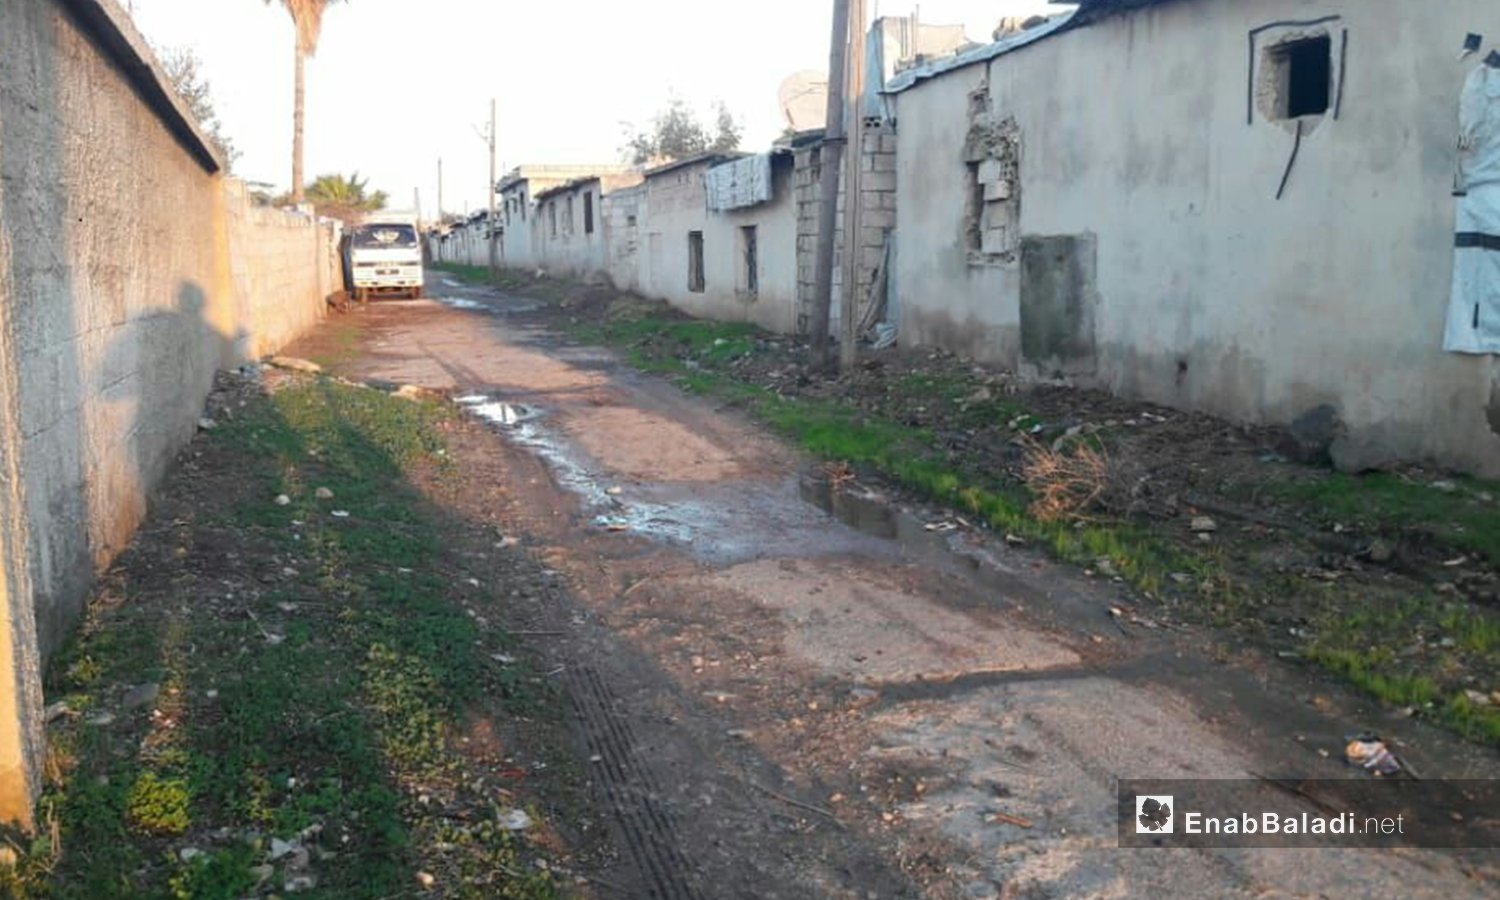 A street in Zayzoon camp flooded with sewage water- December 2020 (Enab Baladi/Halim Muhammad)